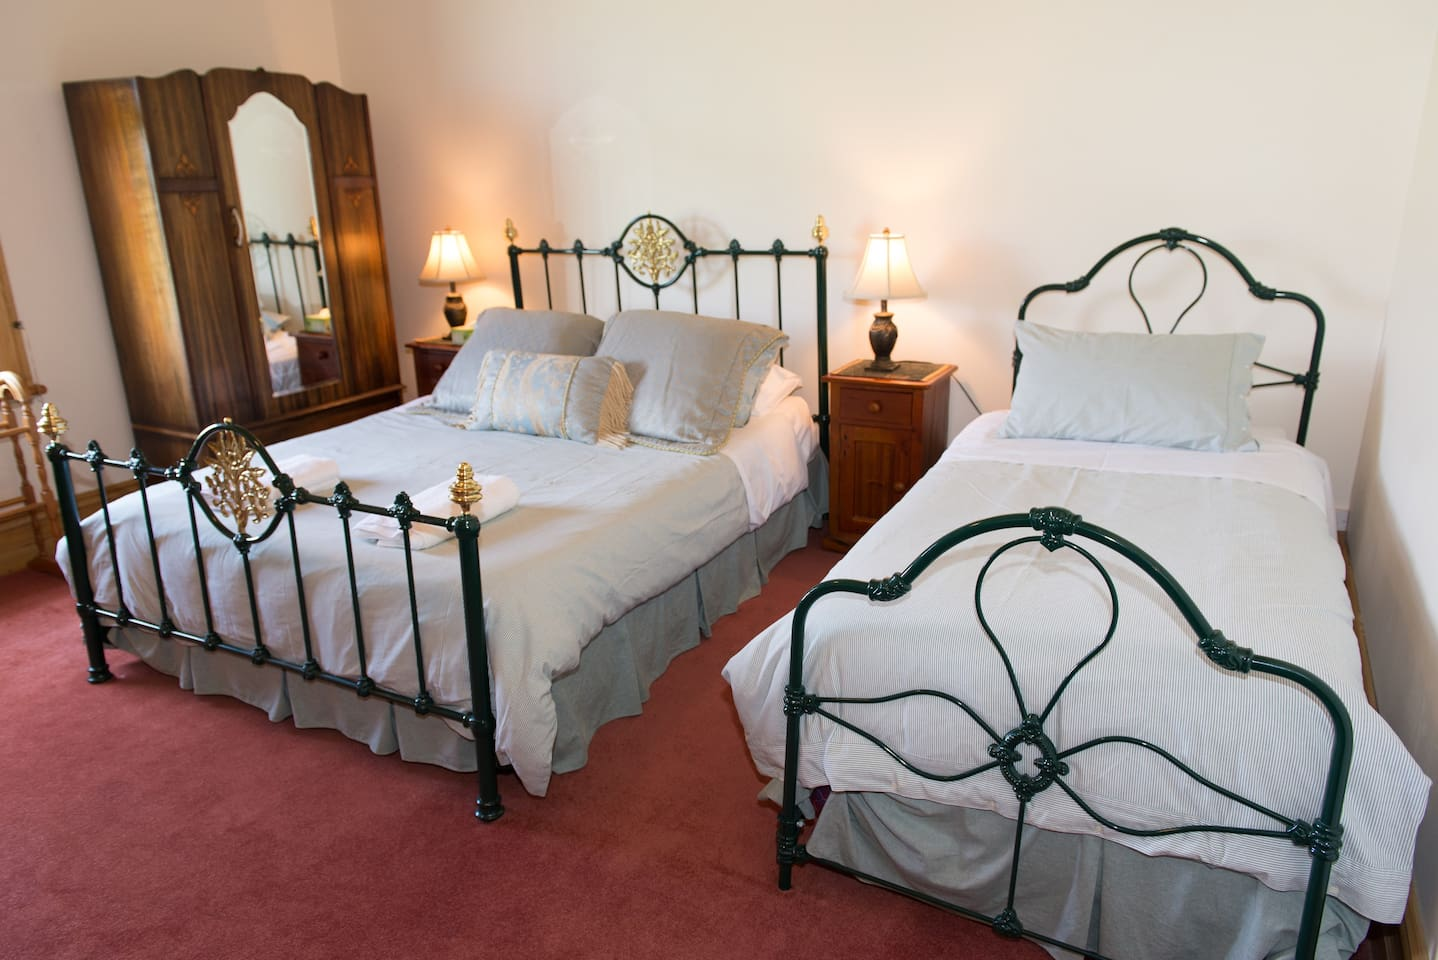 The Victorian room is ideal for 1-3 people.